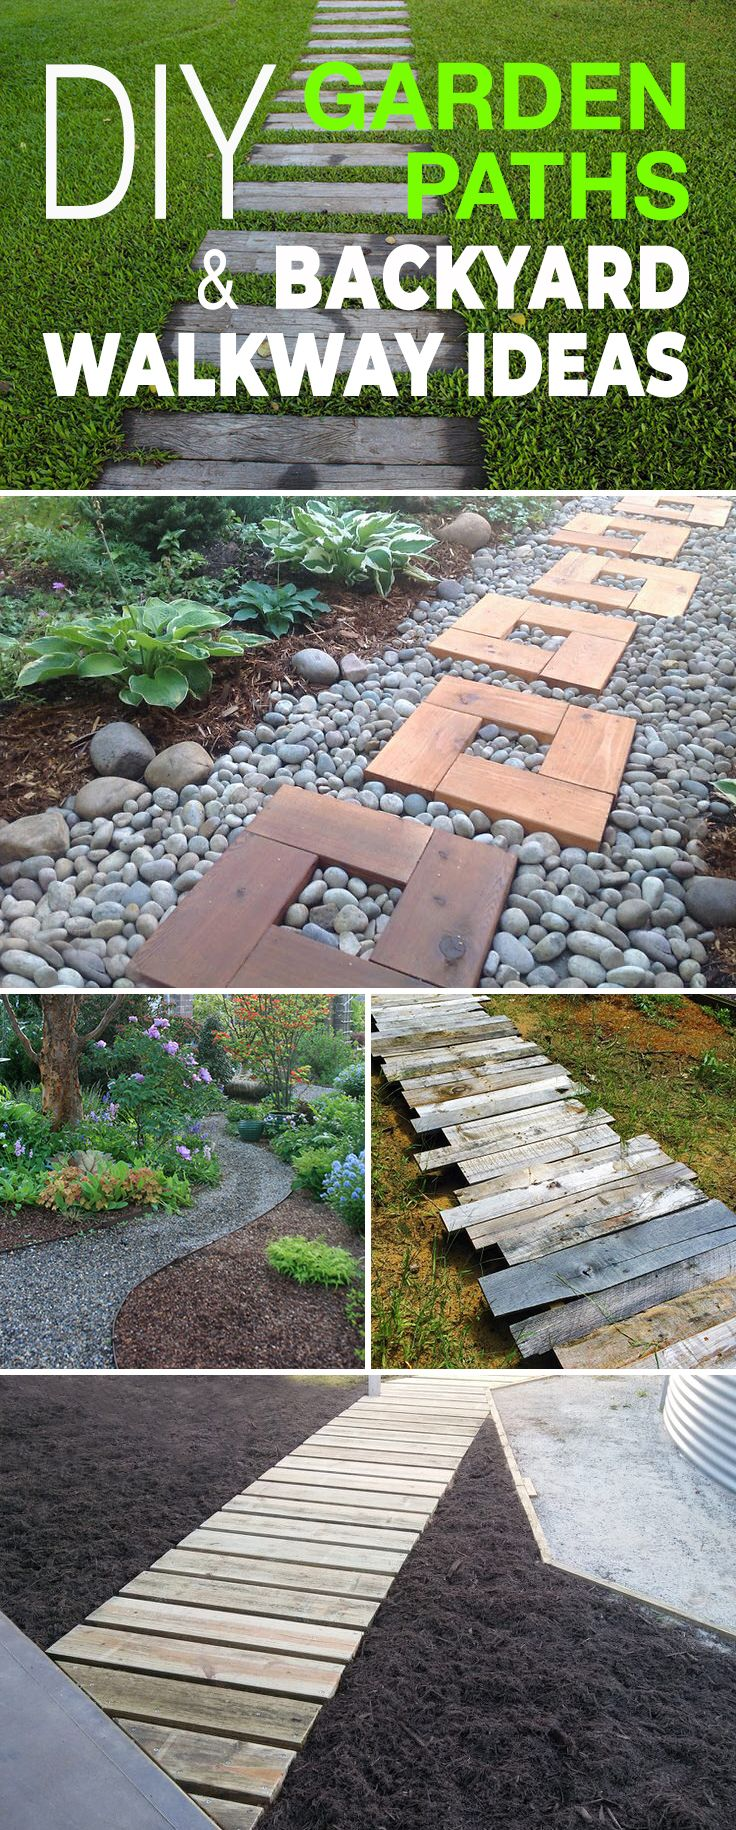 DIY Garden Paths And Backyard Walkway Ideas! U2022 Check Out All These Great  Ideas And Diy Projects. Stone Pathways, Walkway Stepping Stones, Wood Sleeu2026